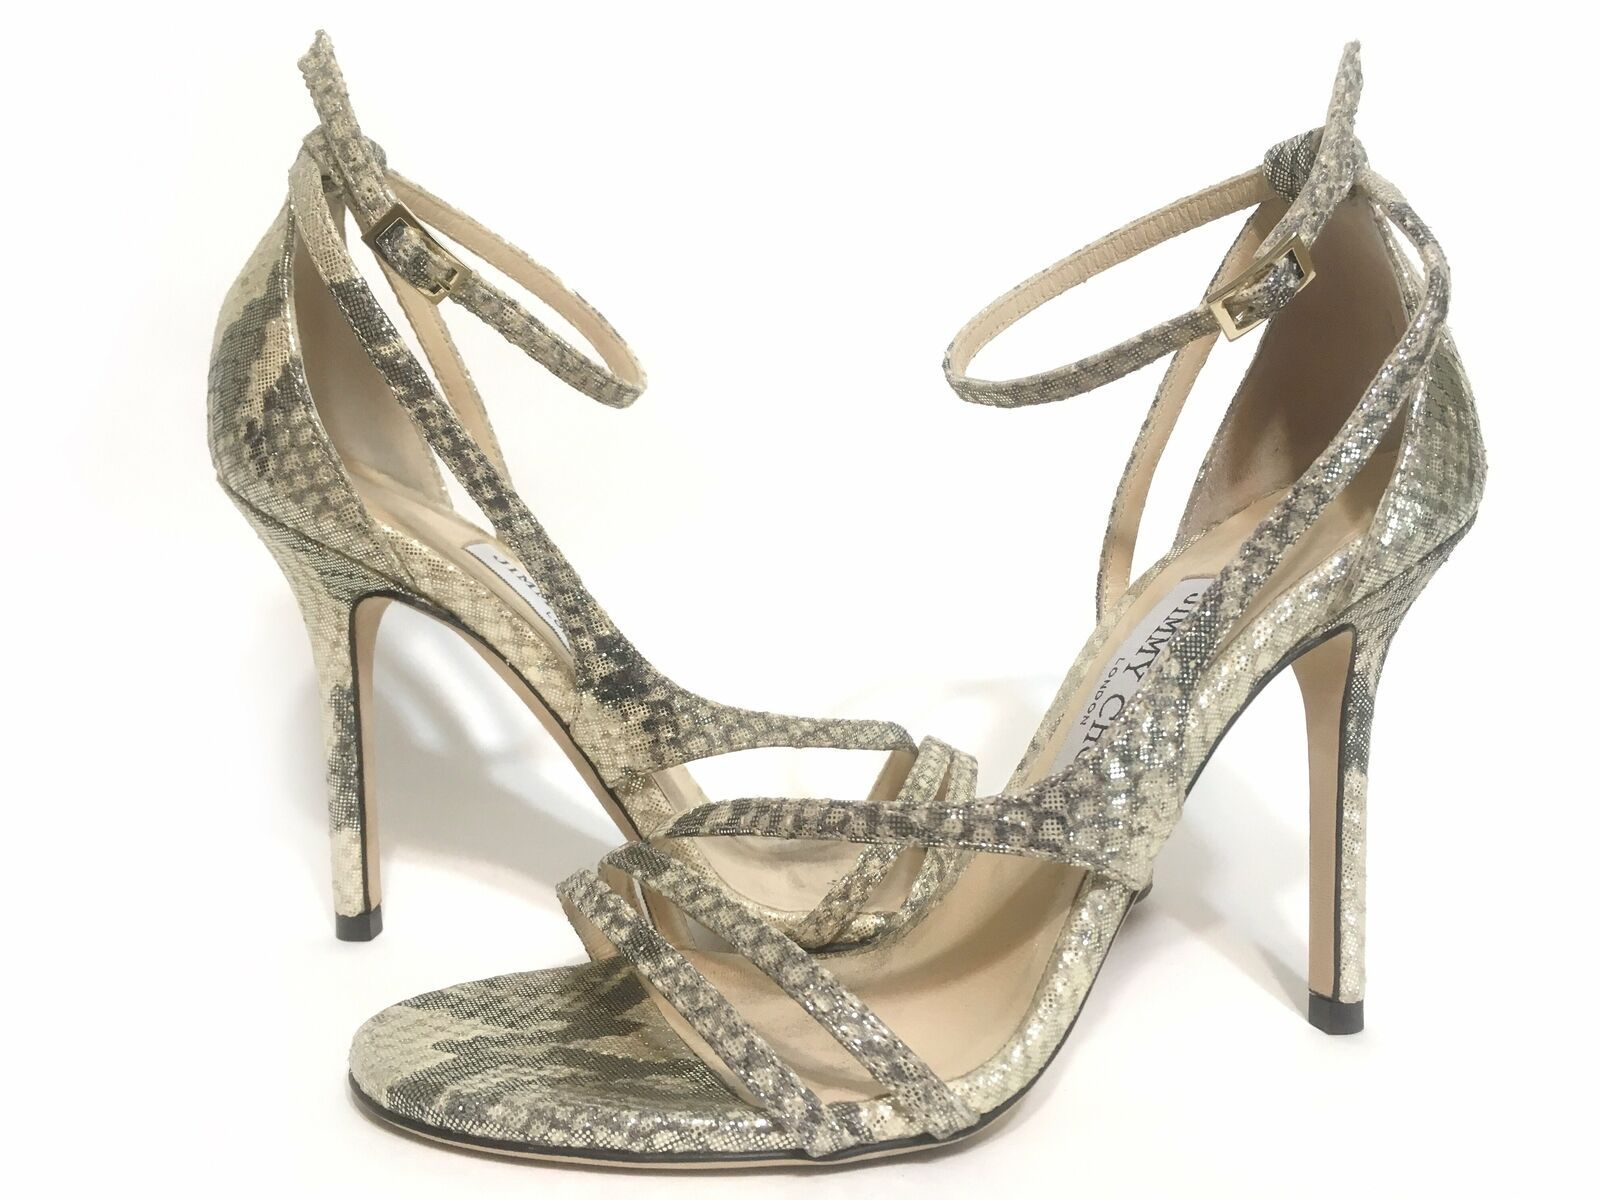 Primary image for Jimmy Choo Leather Snake Print Lea Sandals Gold Size 36